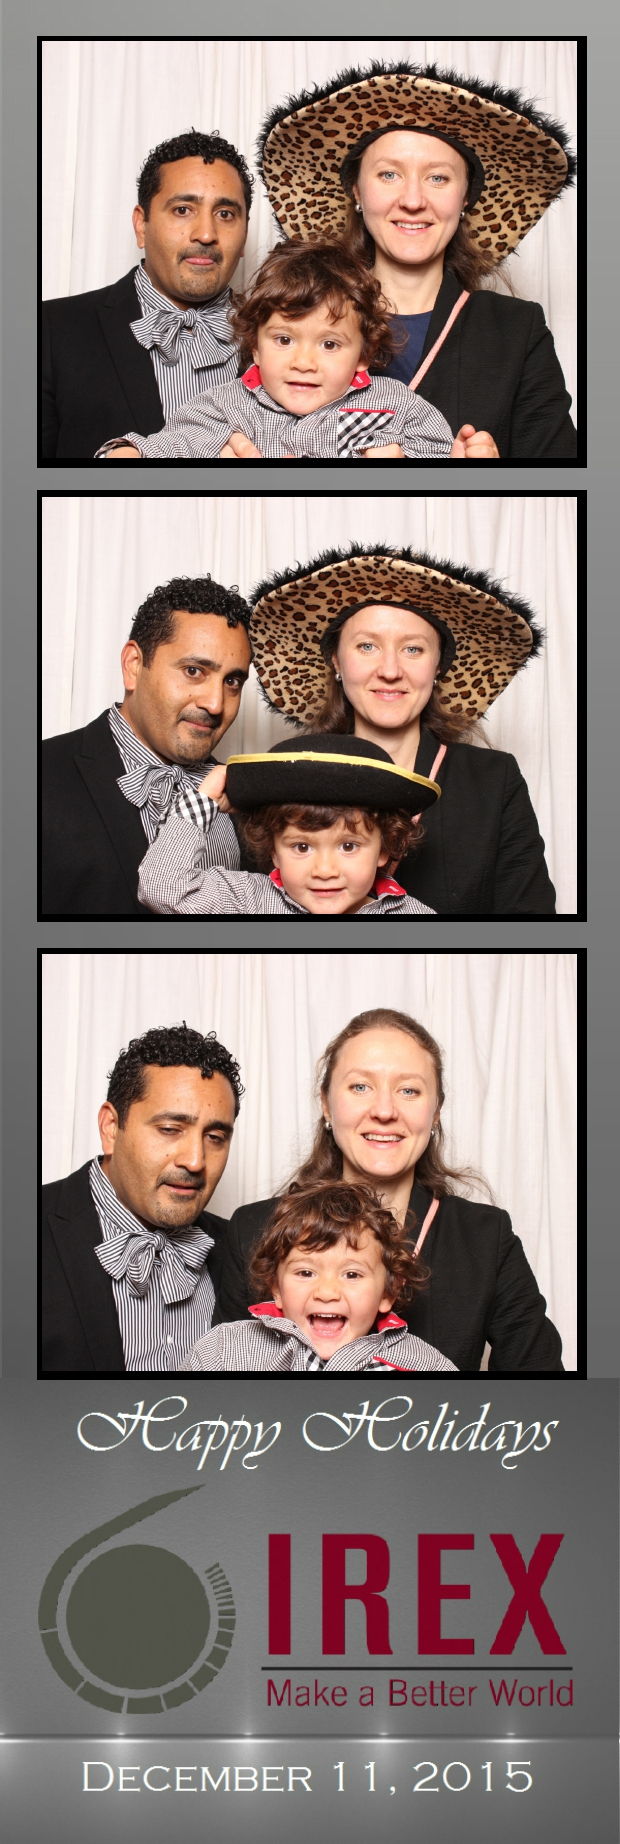 Guest House Events Photo Booth Strips IREX (7).jpg